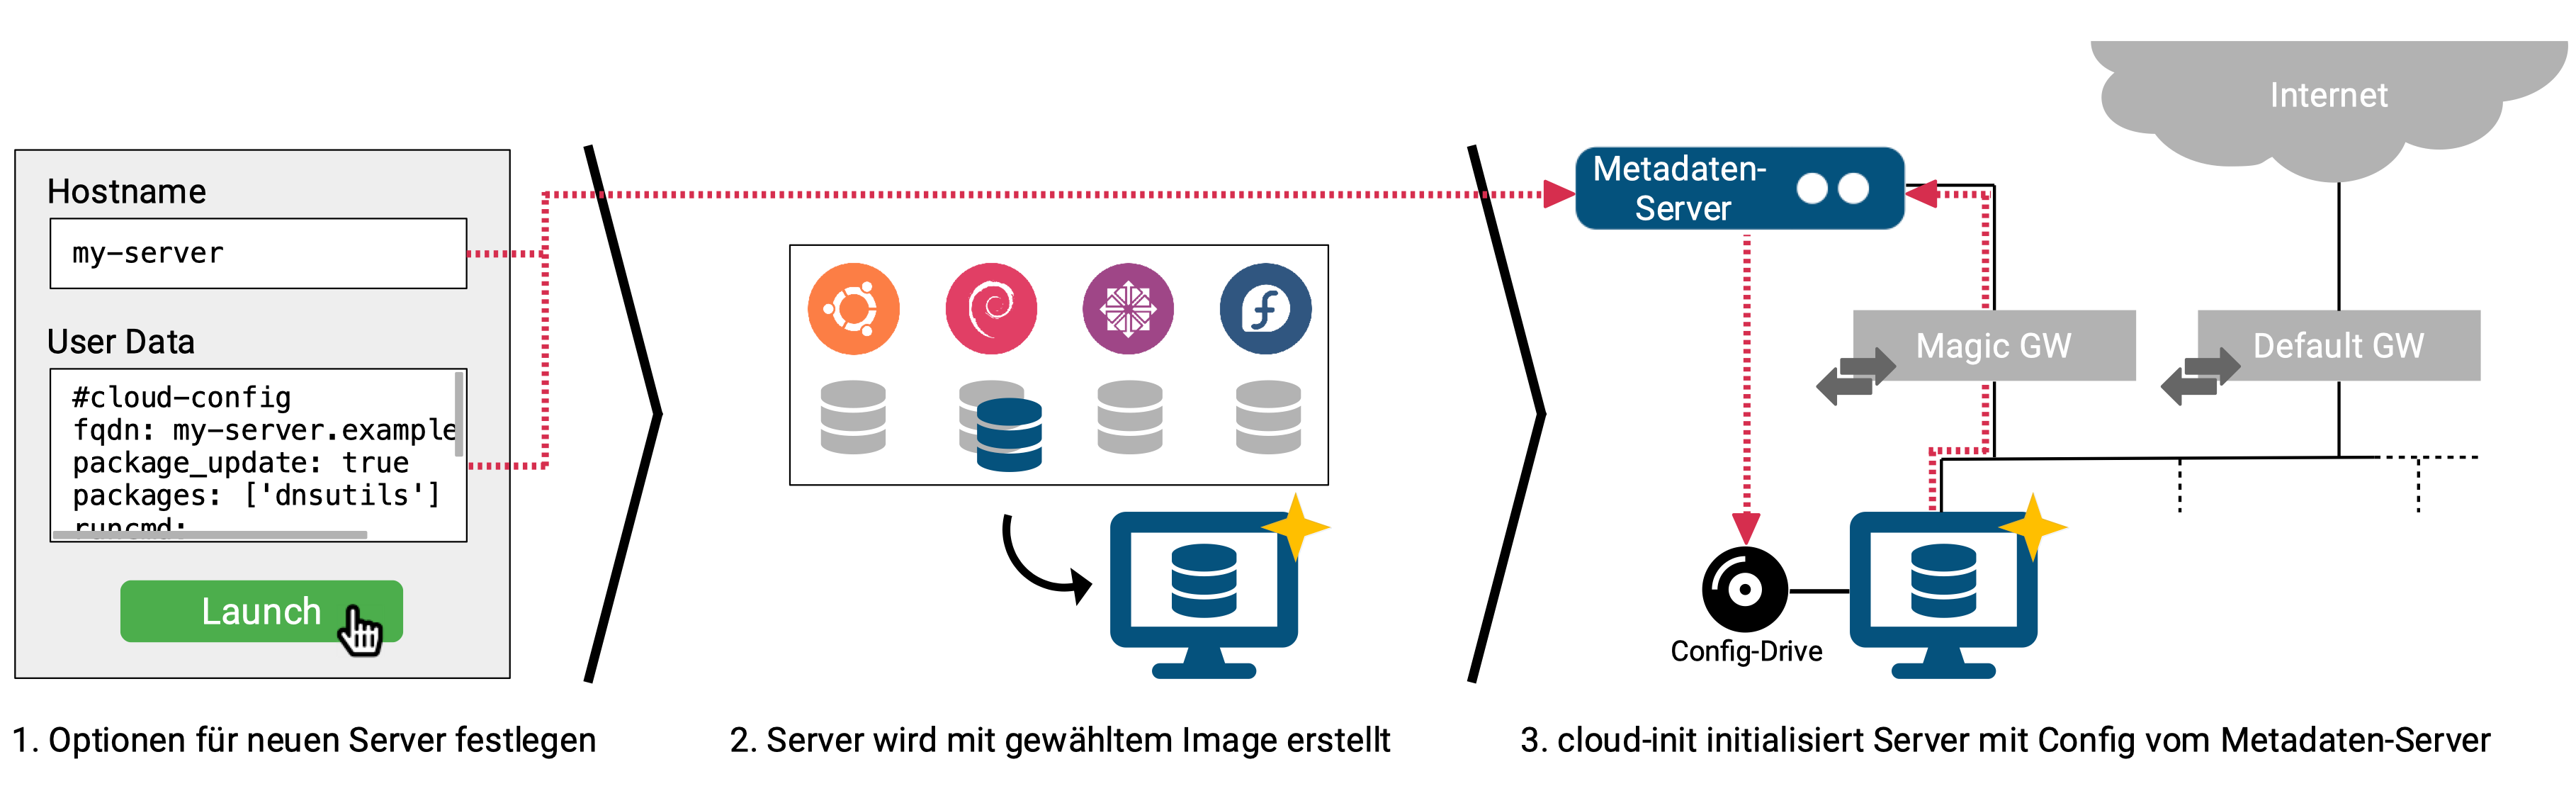 Server-Konfiguration mit cloud-init